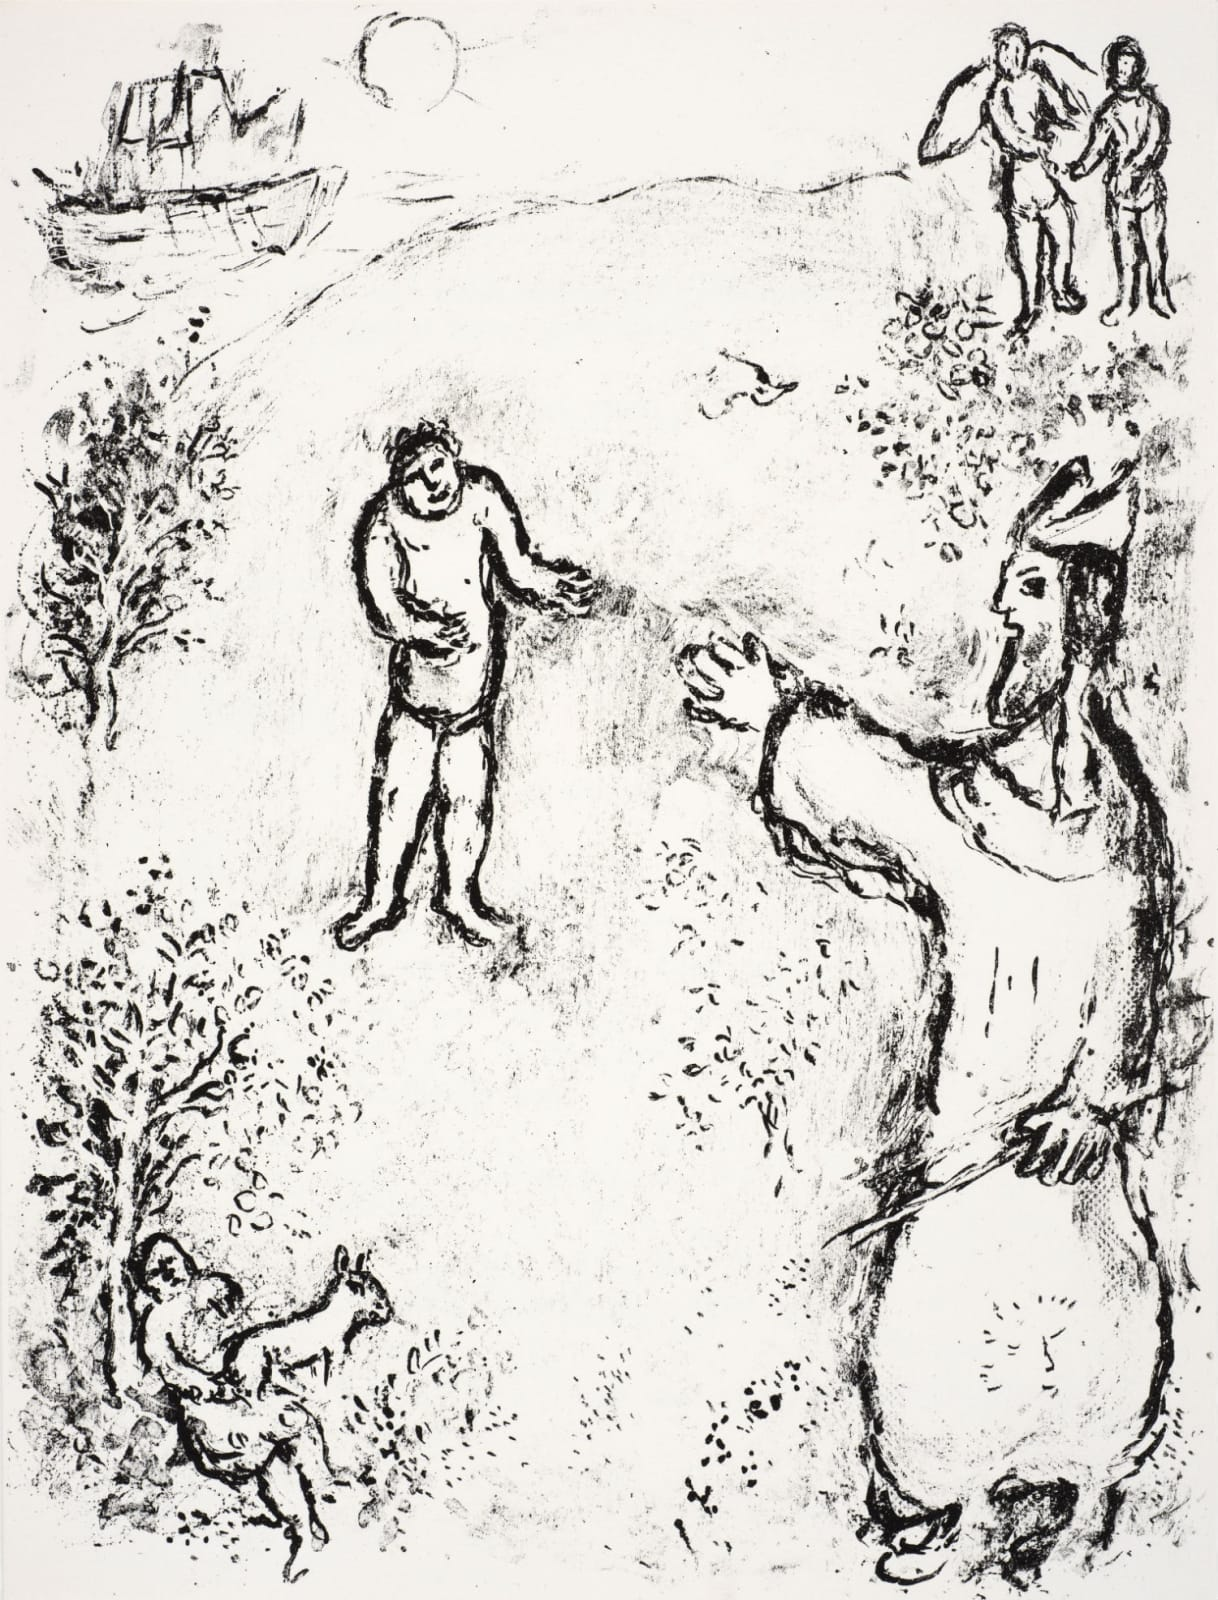 Marc Chagall (1887-1985) Caliban resists his master Prospero (Series: Shakespeare The Tempest) 1975 Lithograph 42.5 x 32.5 cm Ben Uri Collection © Marc Chagall estate To see and discover more about this artist click here